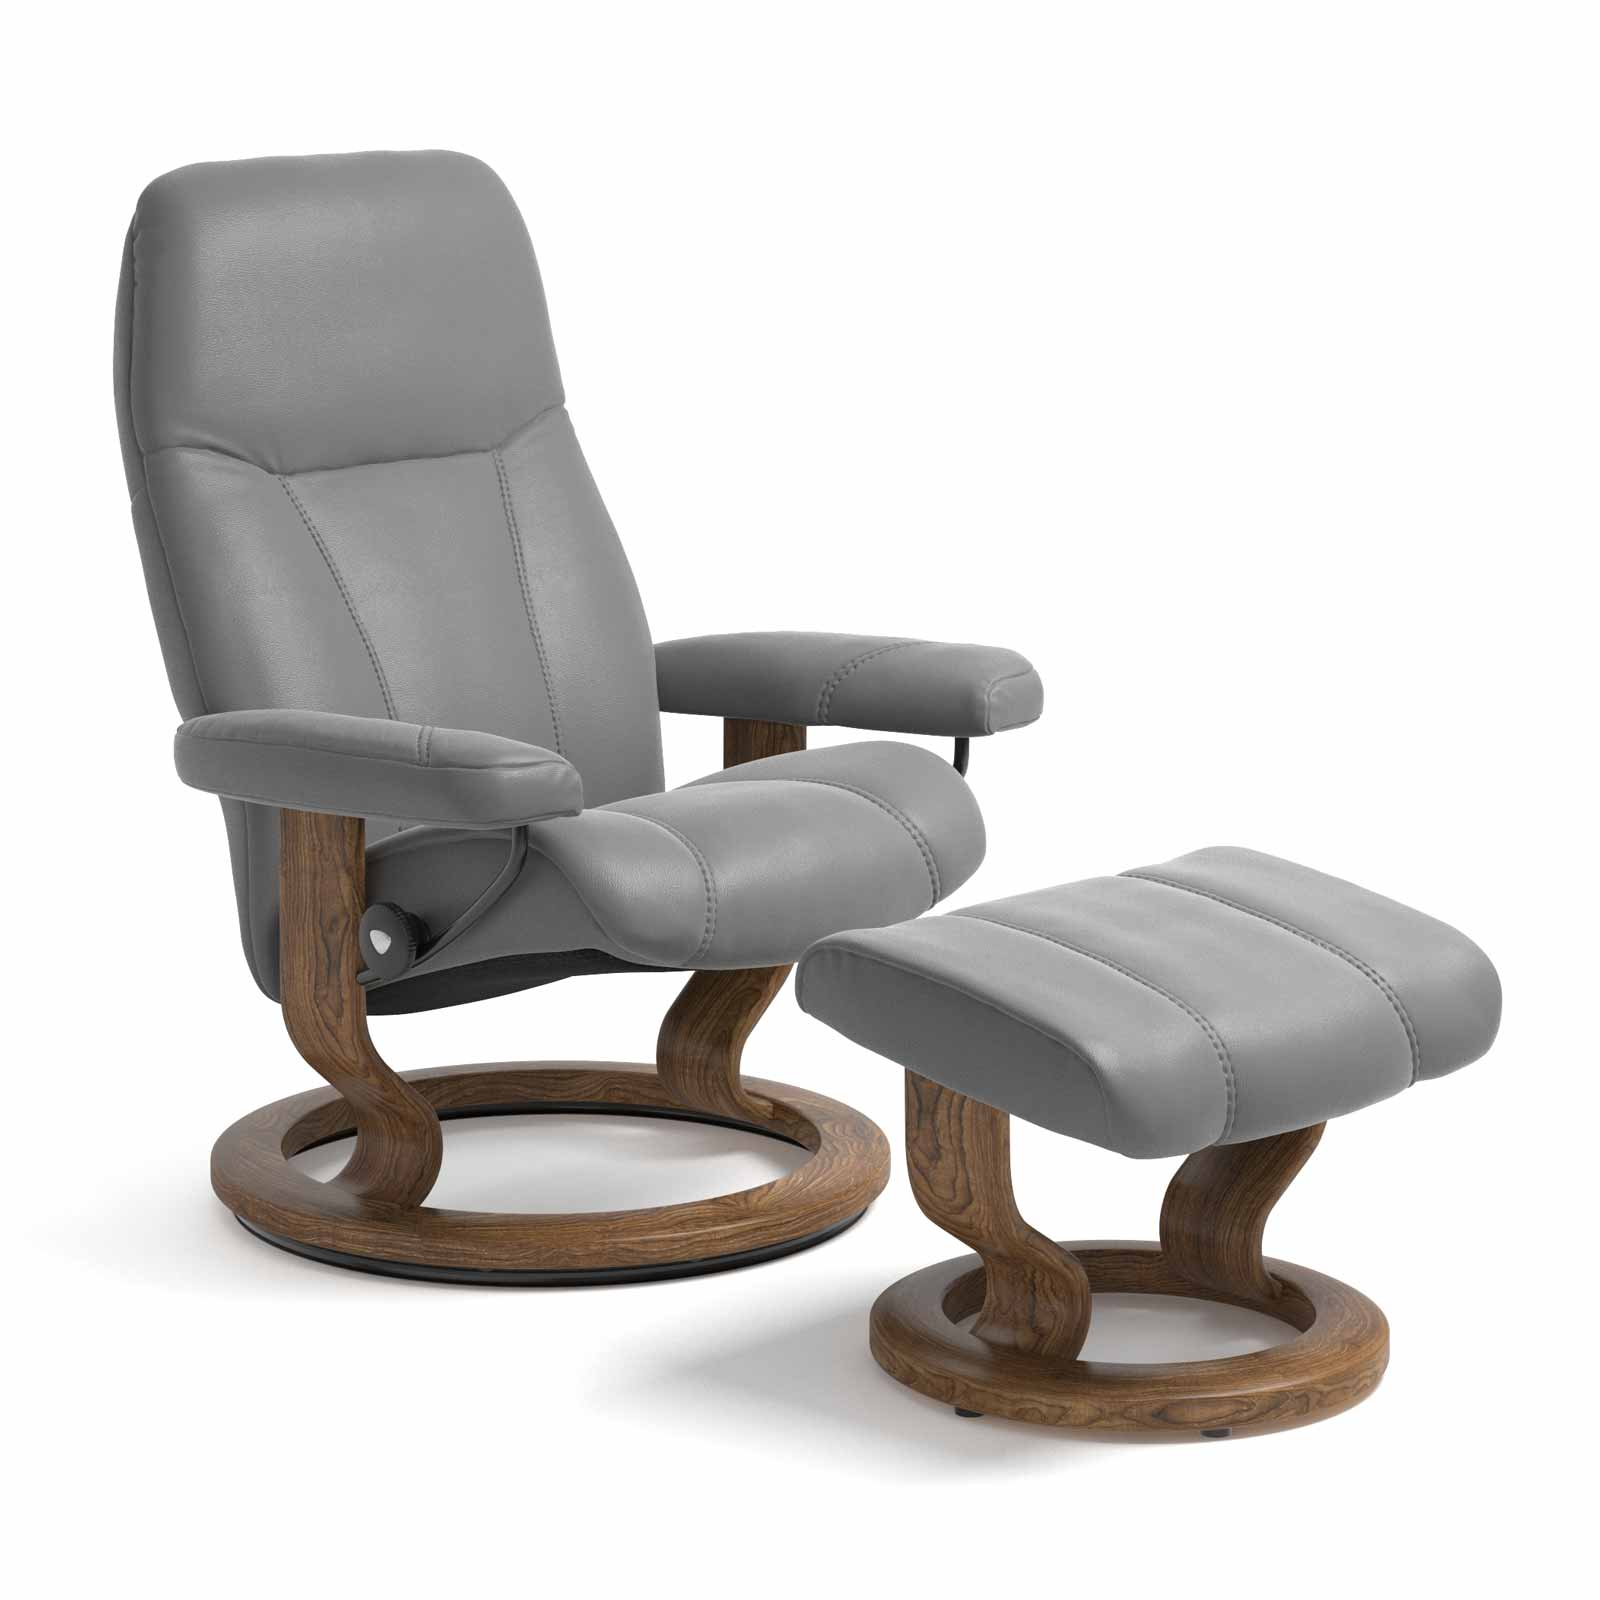 Stressless Sessel Aktion Stressless Consul Classic Batick Wild Dove Mit Hocker